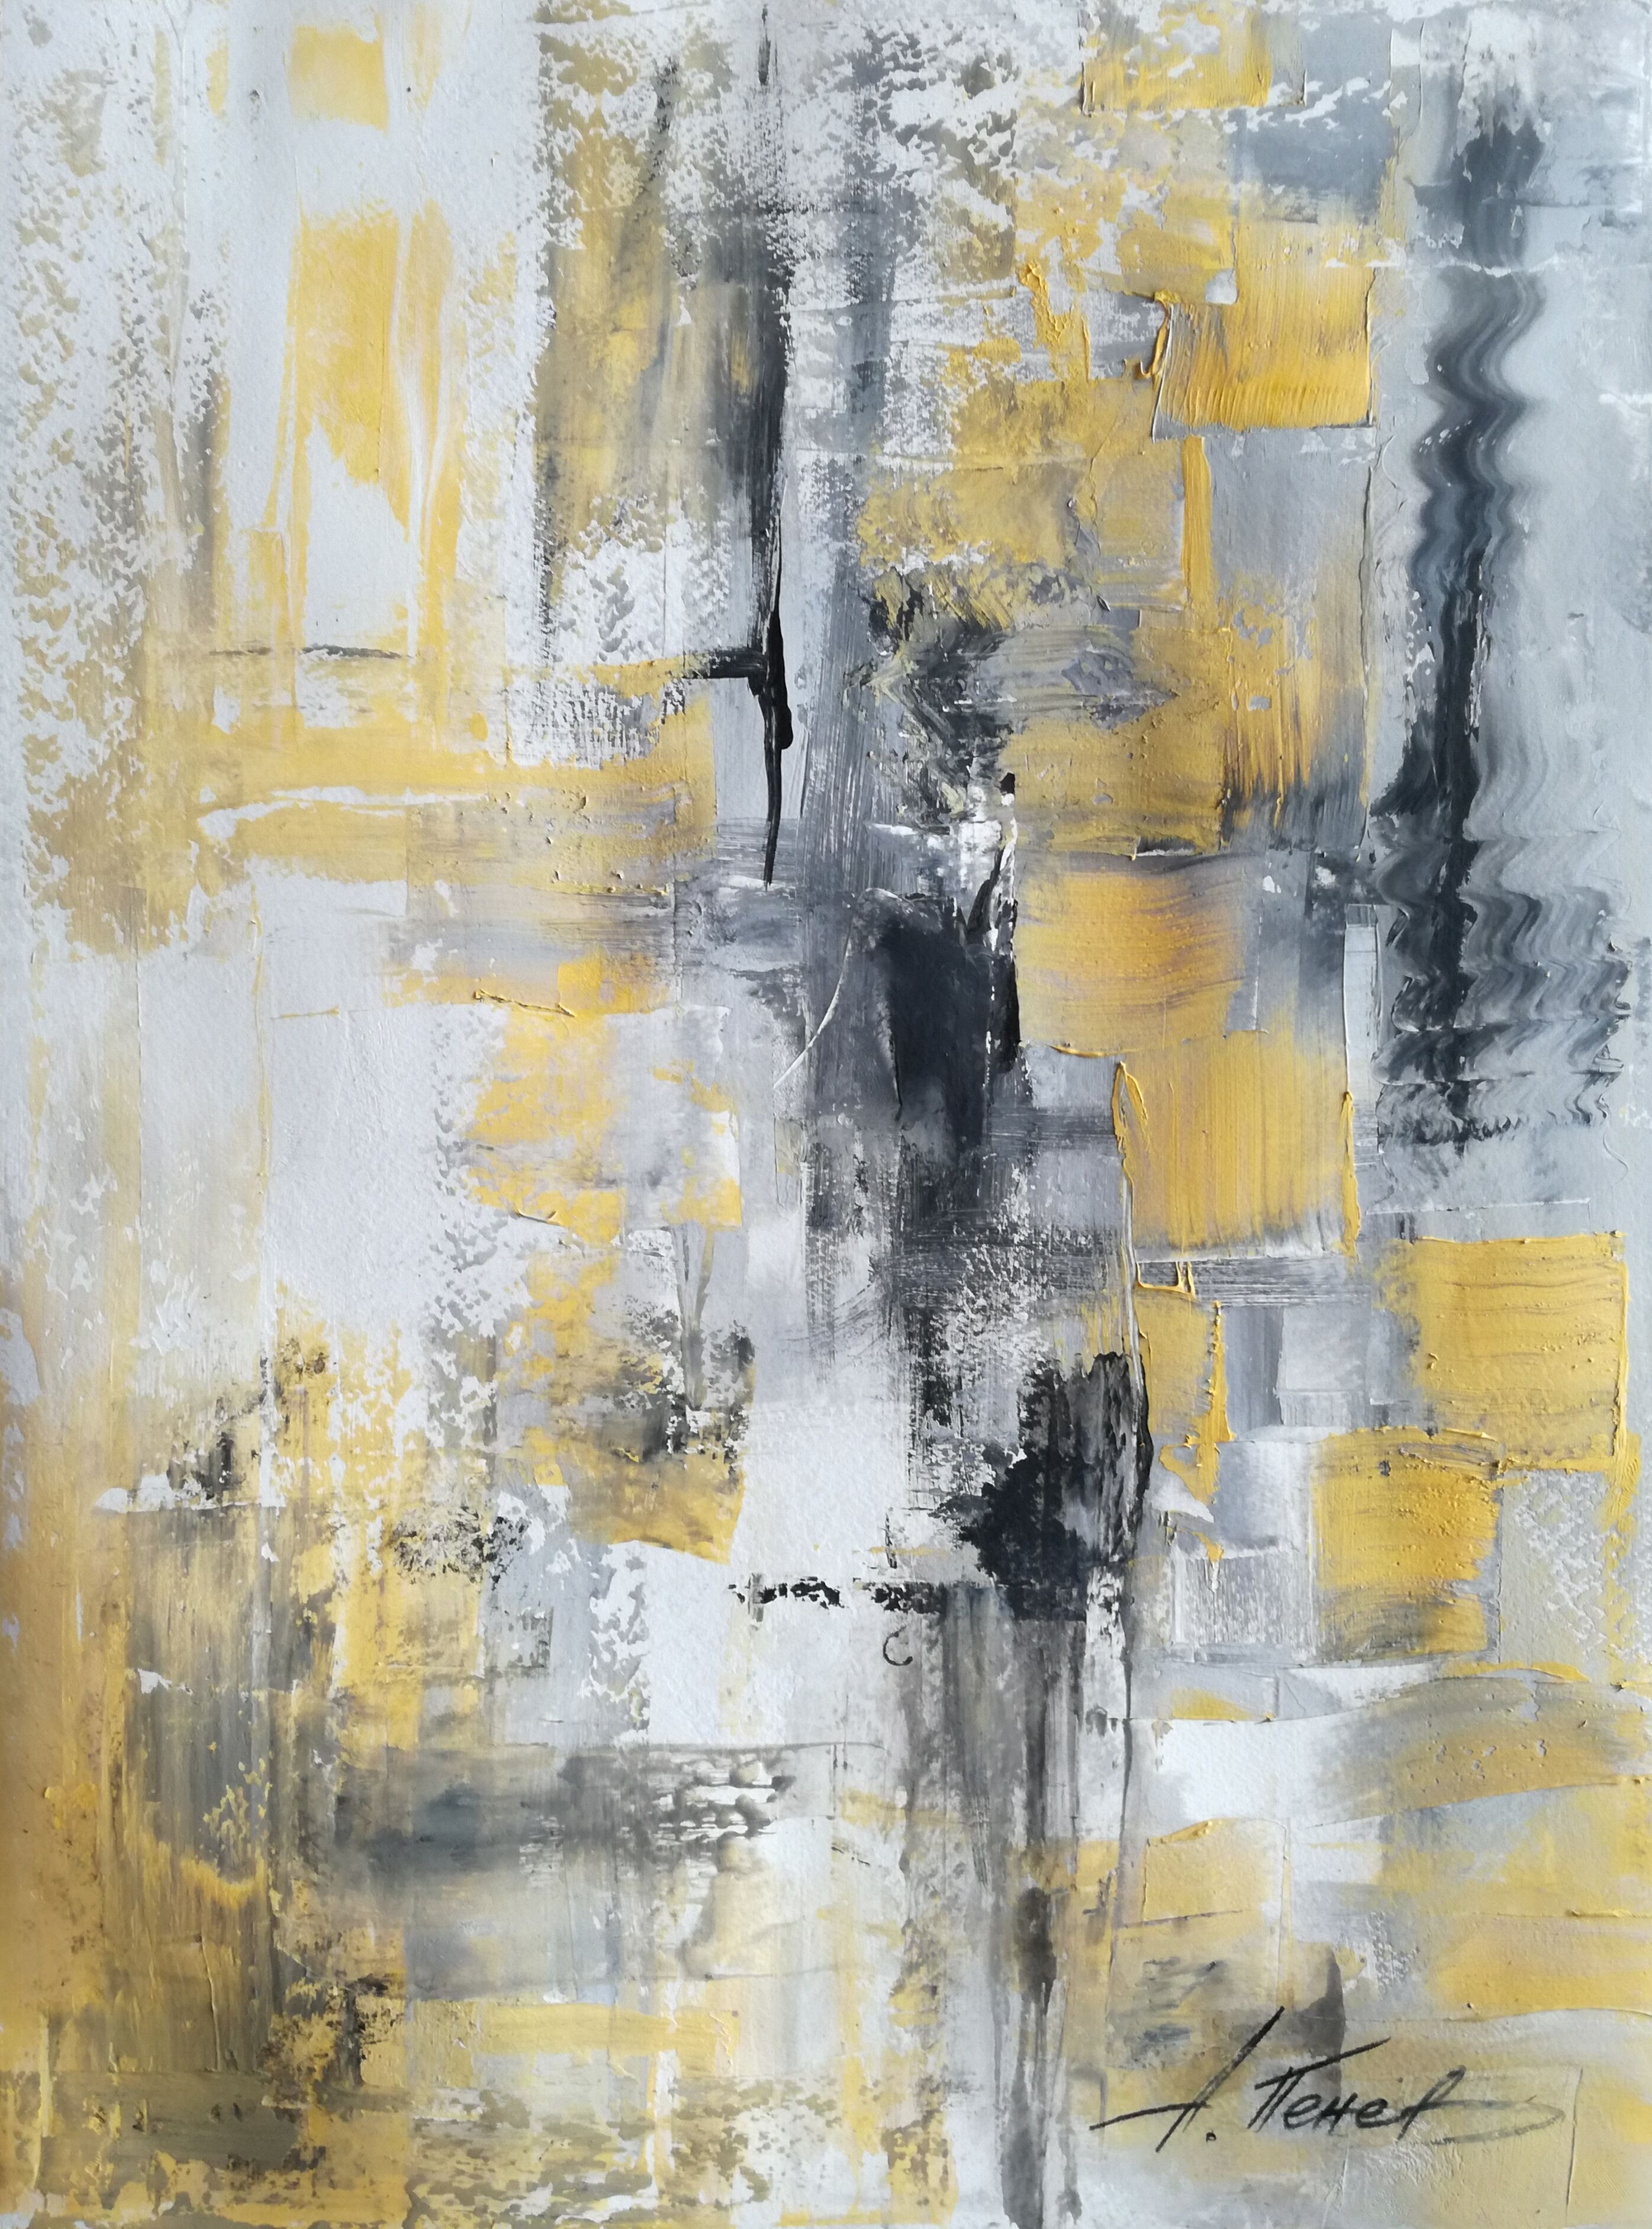 Blackwhiteyellow texture abstract painting by apenev